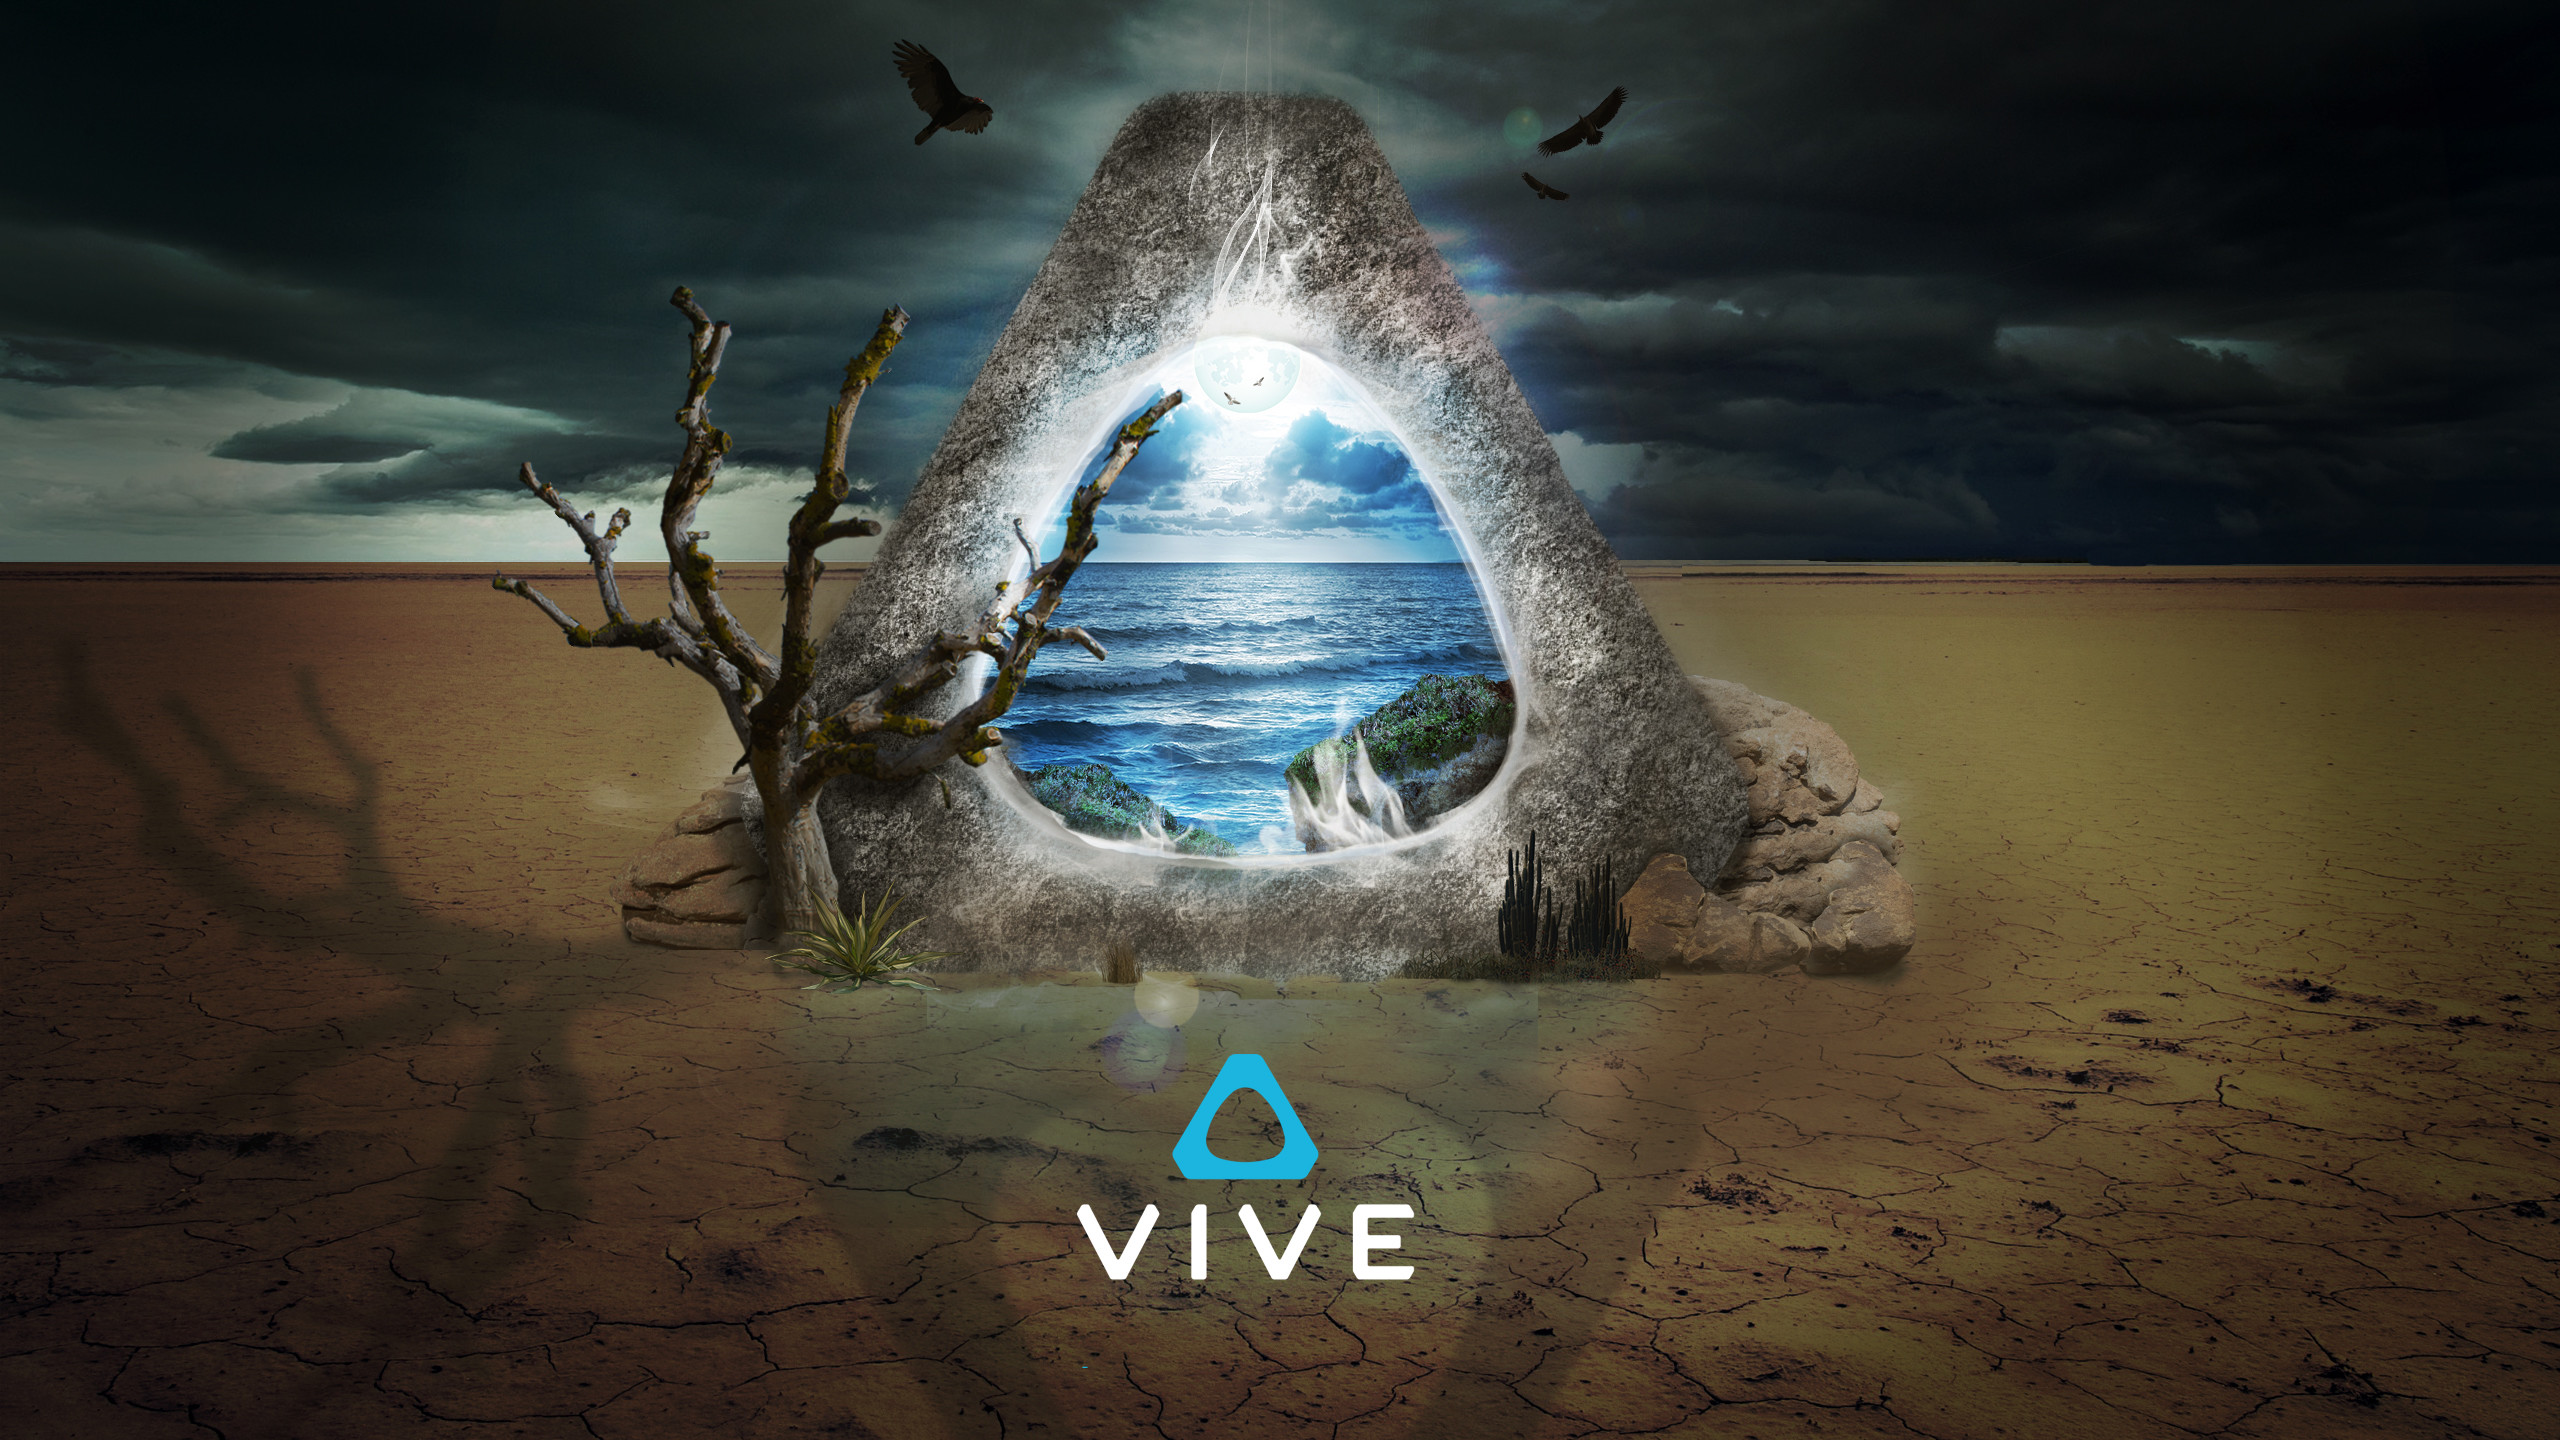 2560x1440 Made another Vive wallpaper for you all ...